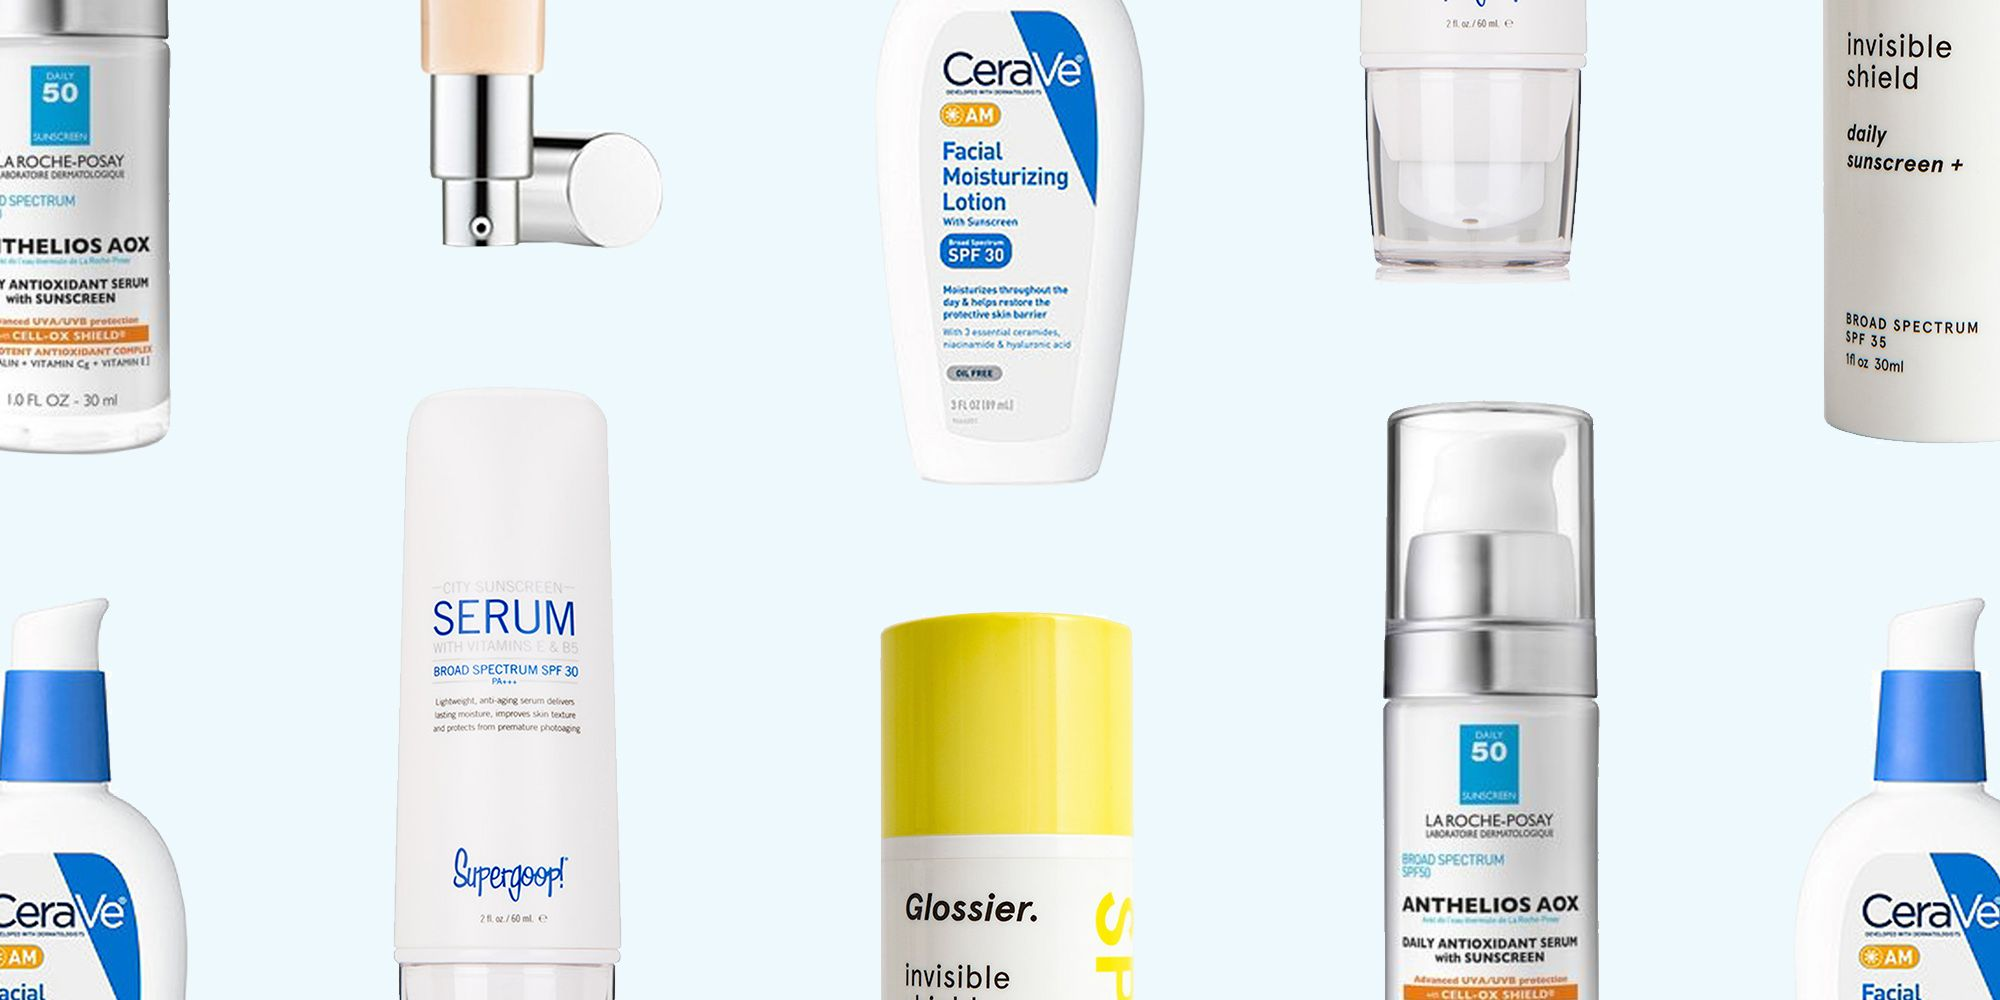 The Best Sunscreen For Your Face, According to ELLE Editors